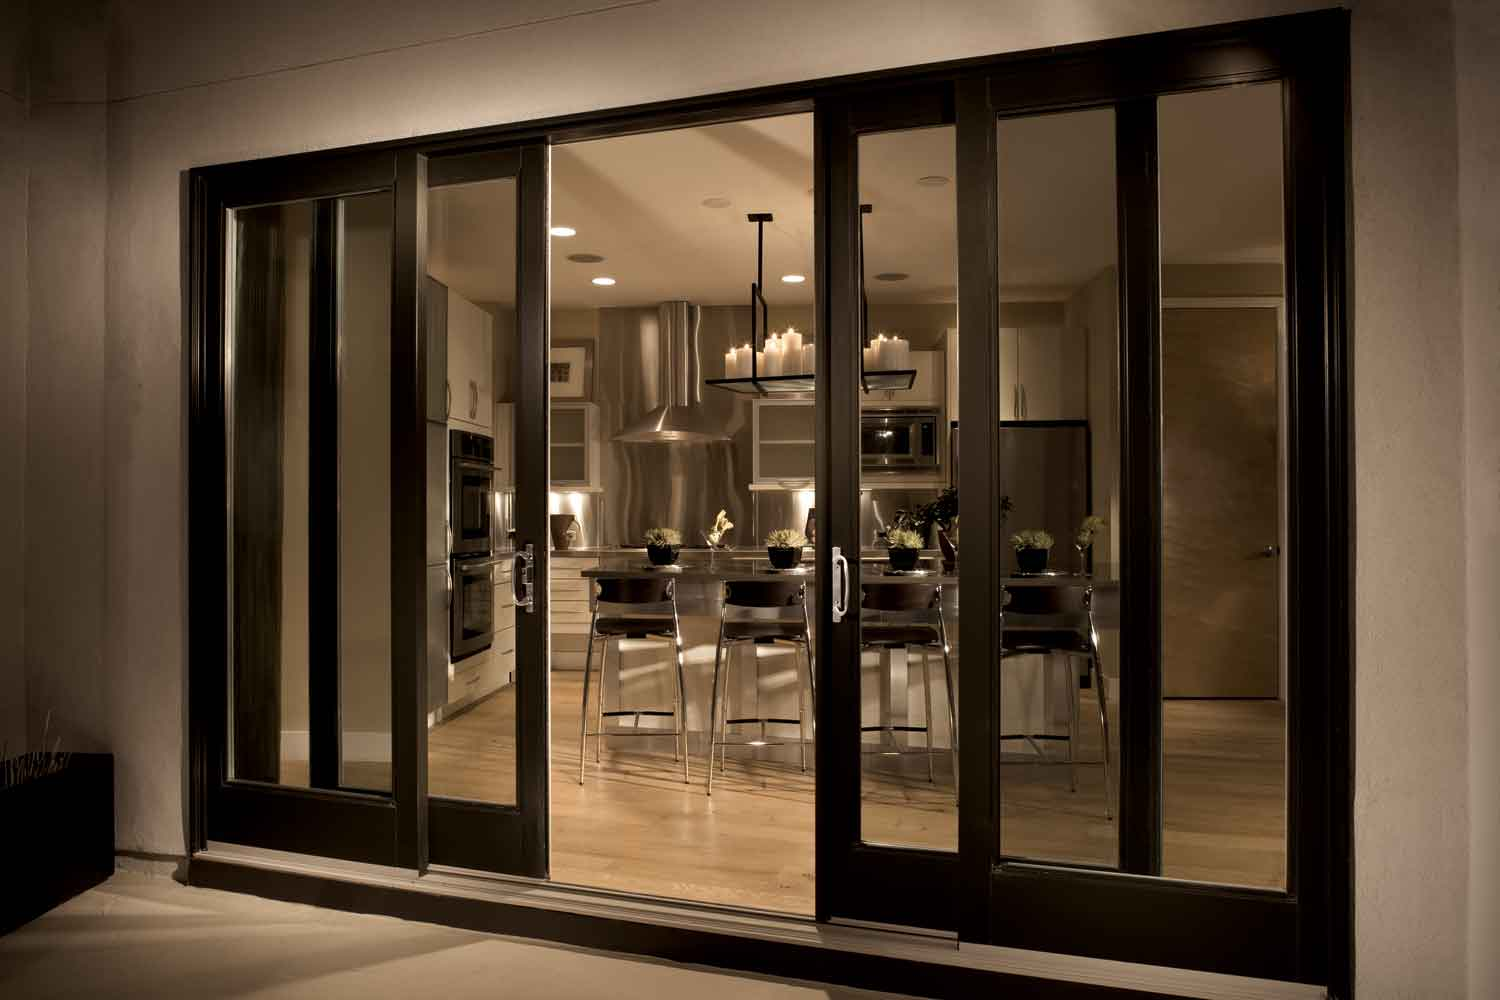 Glass doors design - Sliding French Door Design Sliding French Door Design